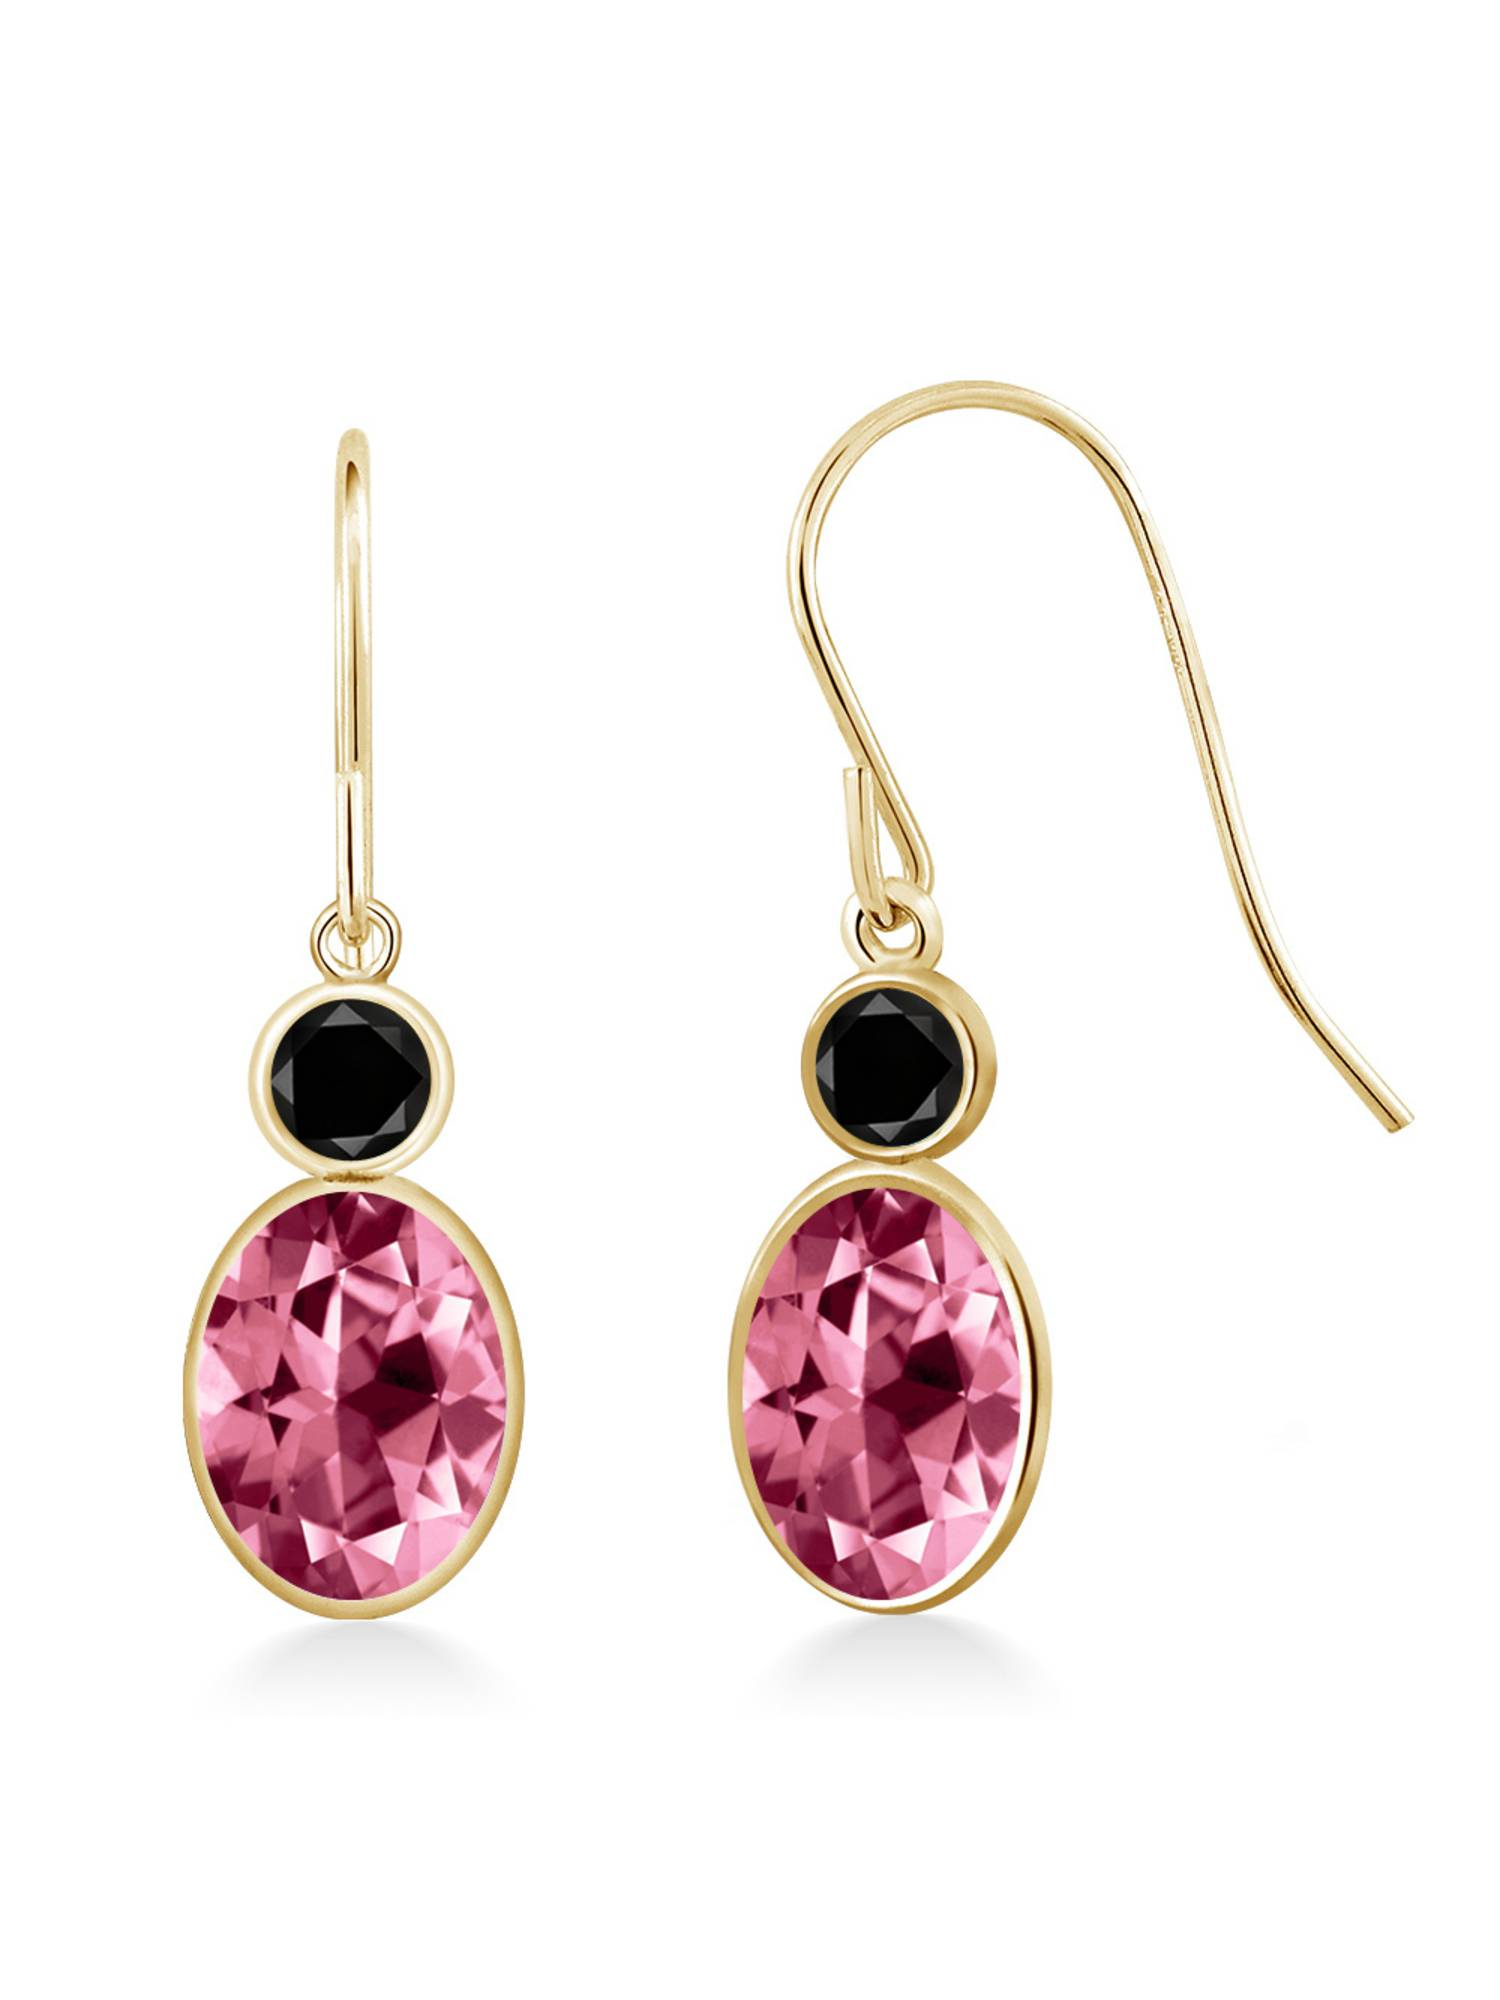 14K Yellow Gold Diamond Earrings Set with Oval Pink Topaz from Swarovski by